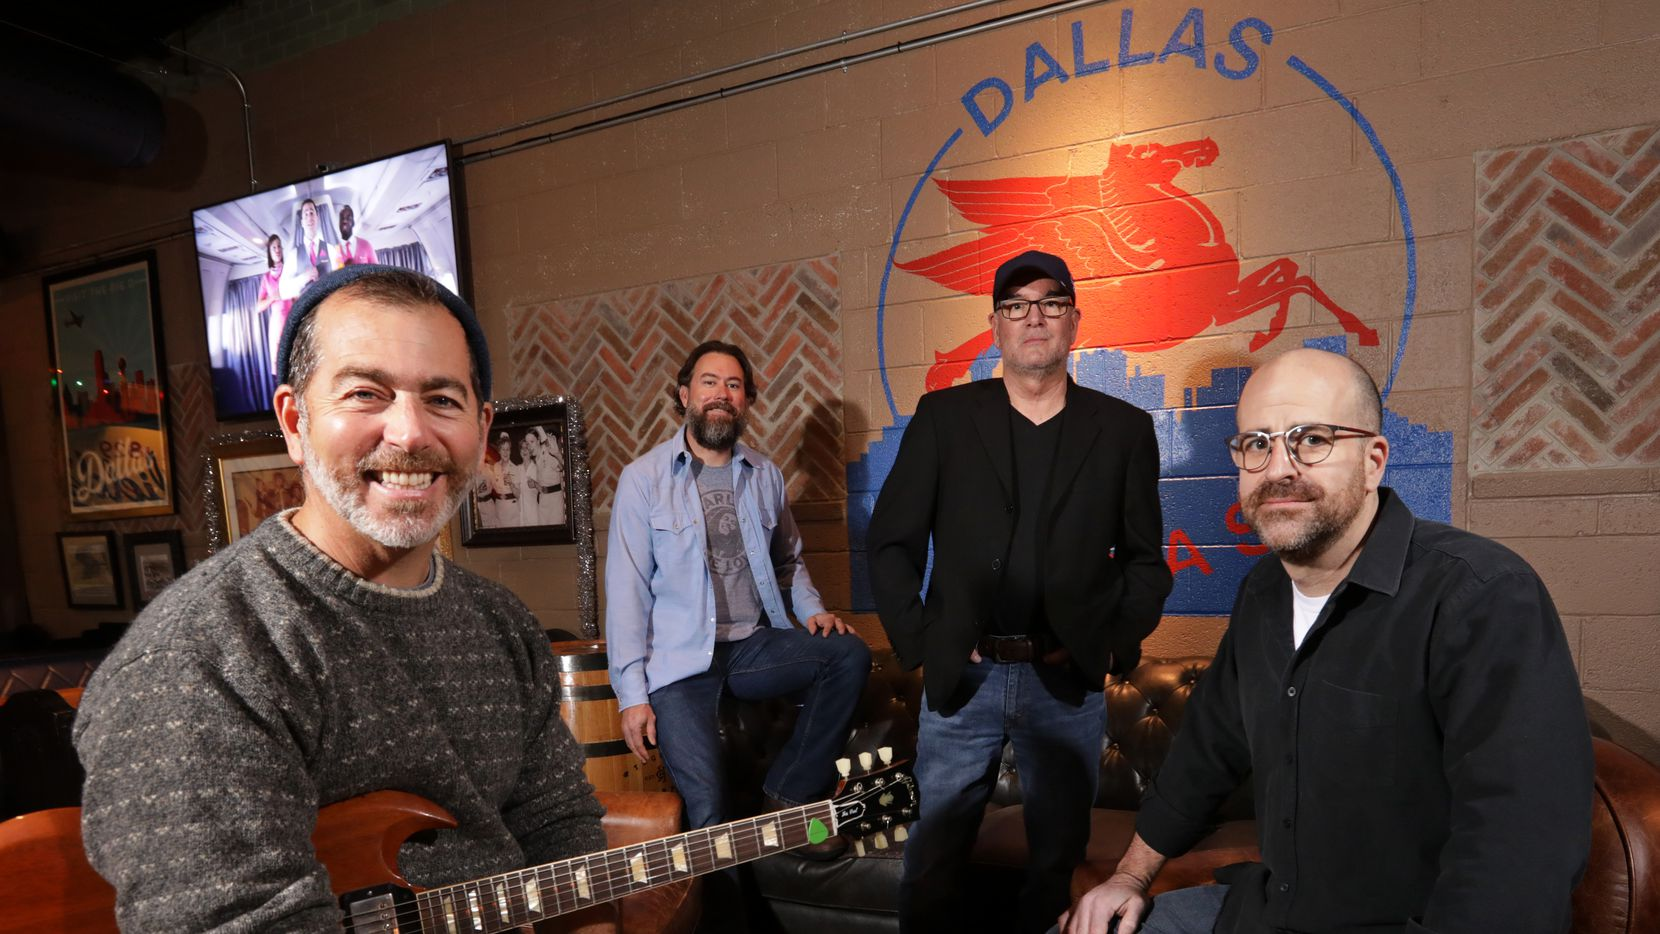 Bandolero band members Rick Sukkar (left) Paul Corliss, Pete Duncan, and Rob Danz pose for a photograph at Redfield's Neighborhood Tavern on Wednesday.